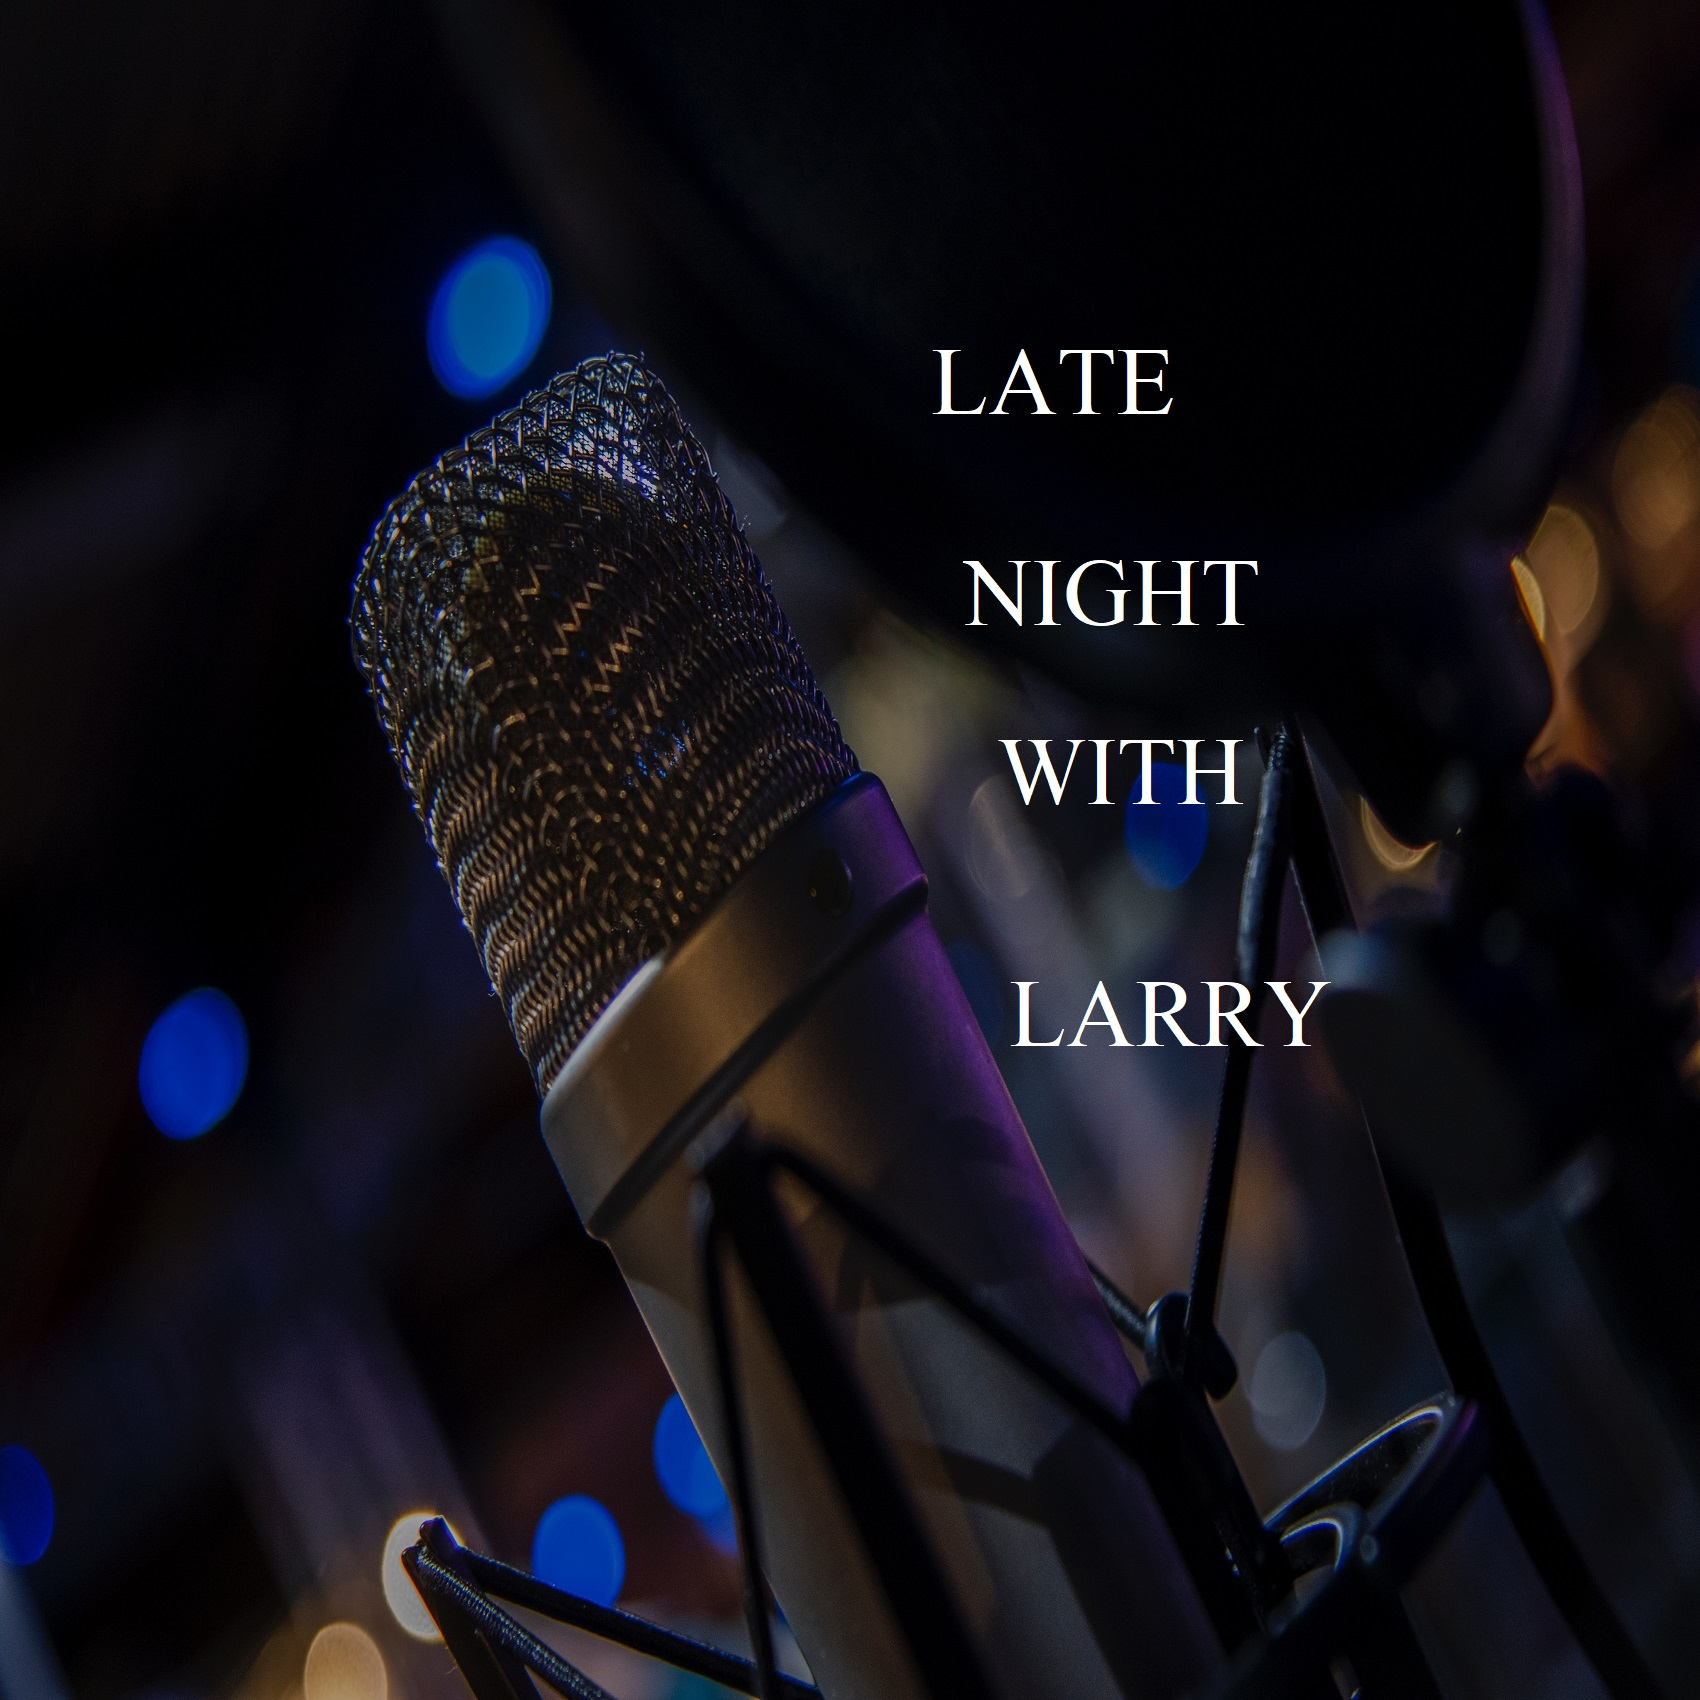 LATE NIGHT WITH LARRY